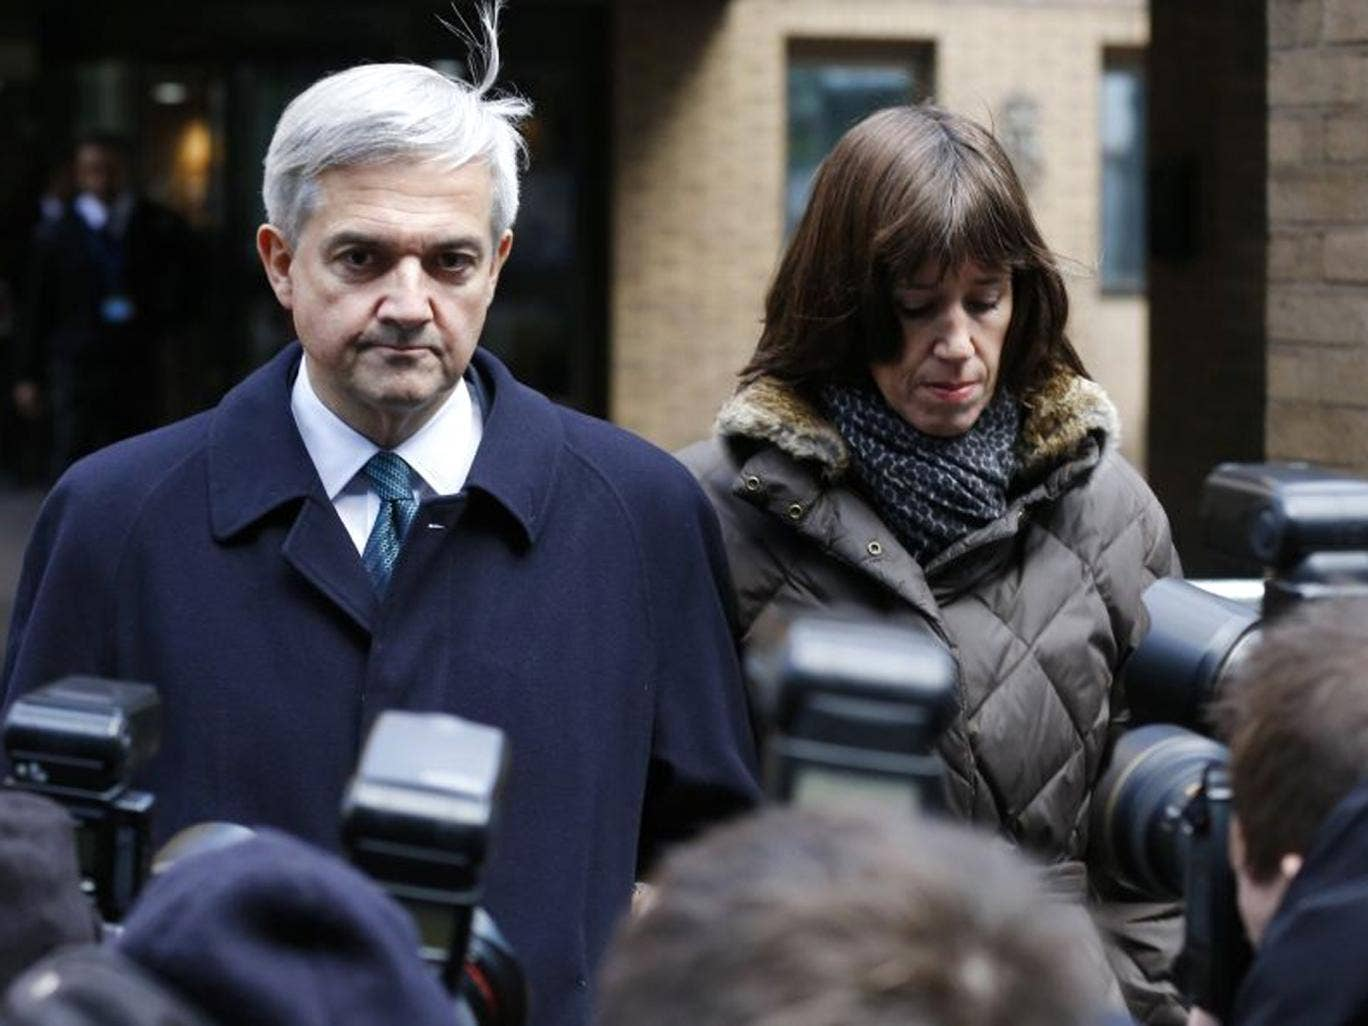 Former Liberal Democrat Cabinet minister Chris Huhne, pictured with partner Carina Trimingham, pleaded guilty and resigned as an MP